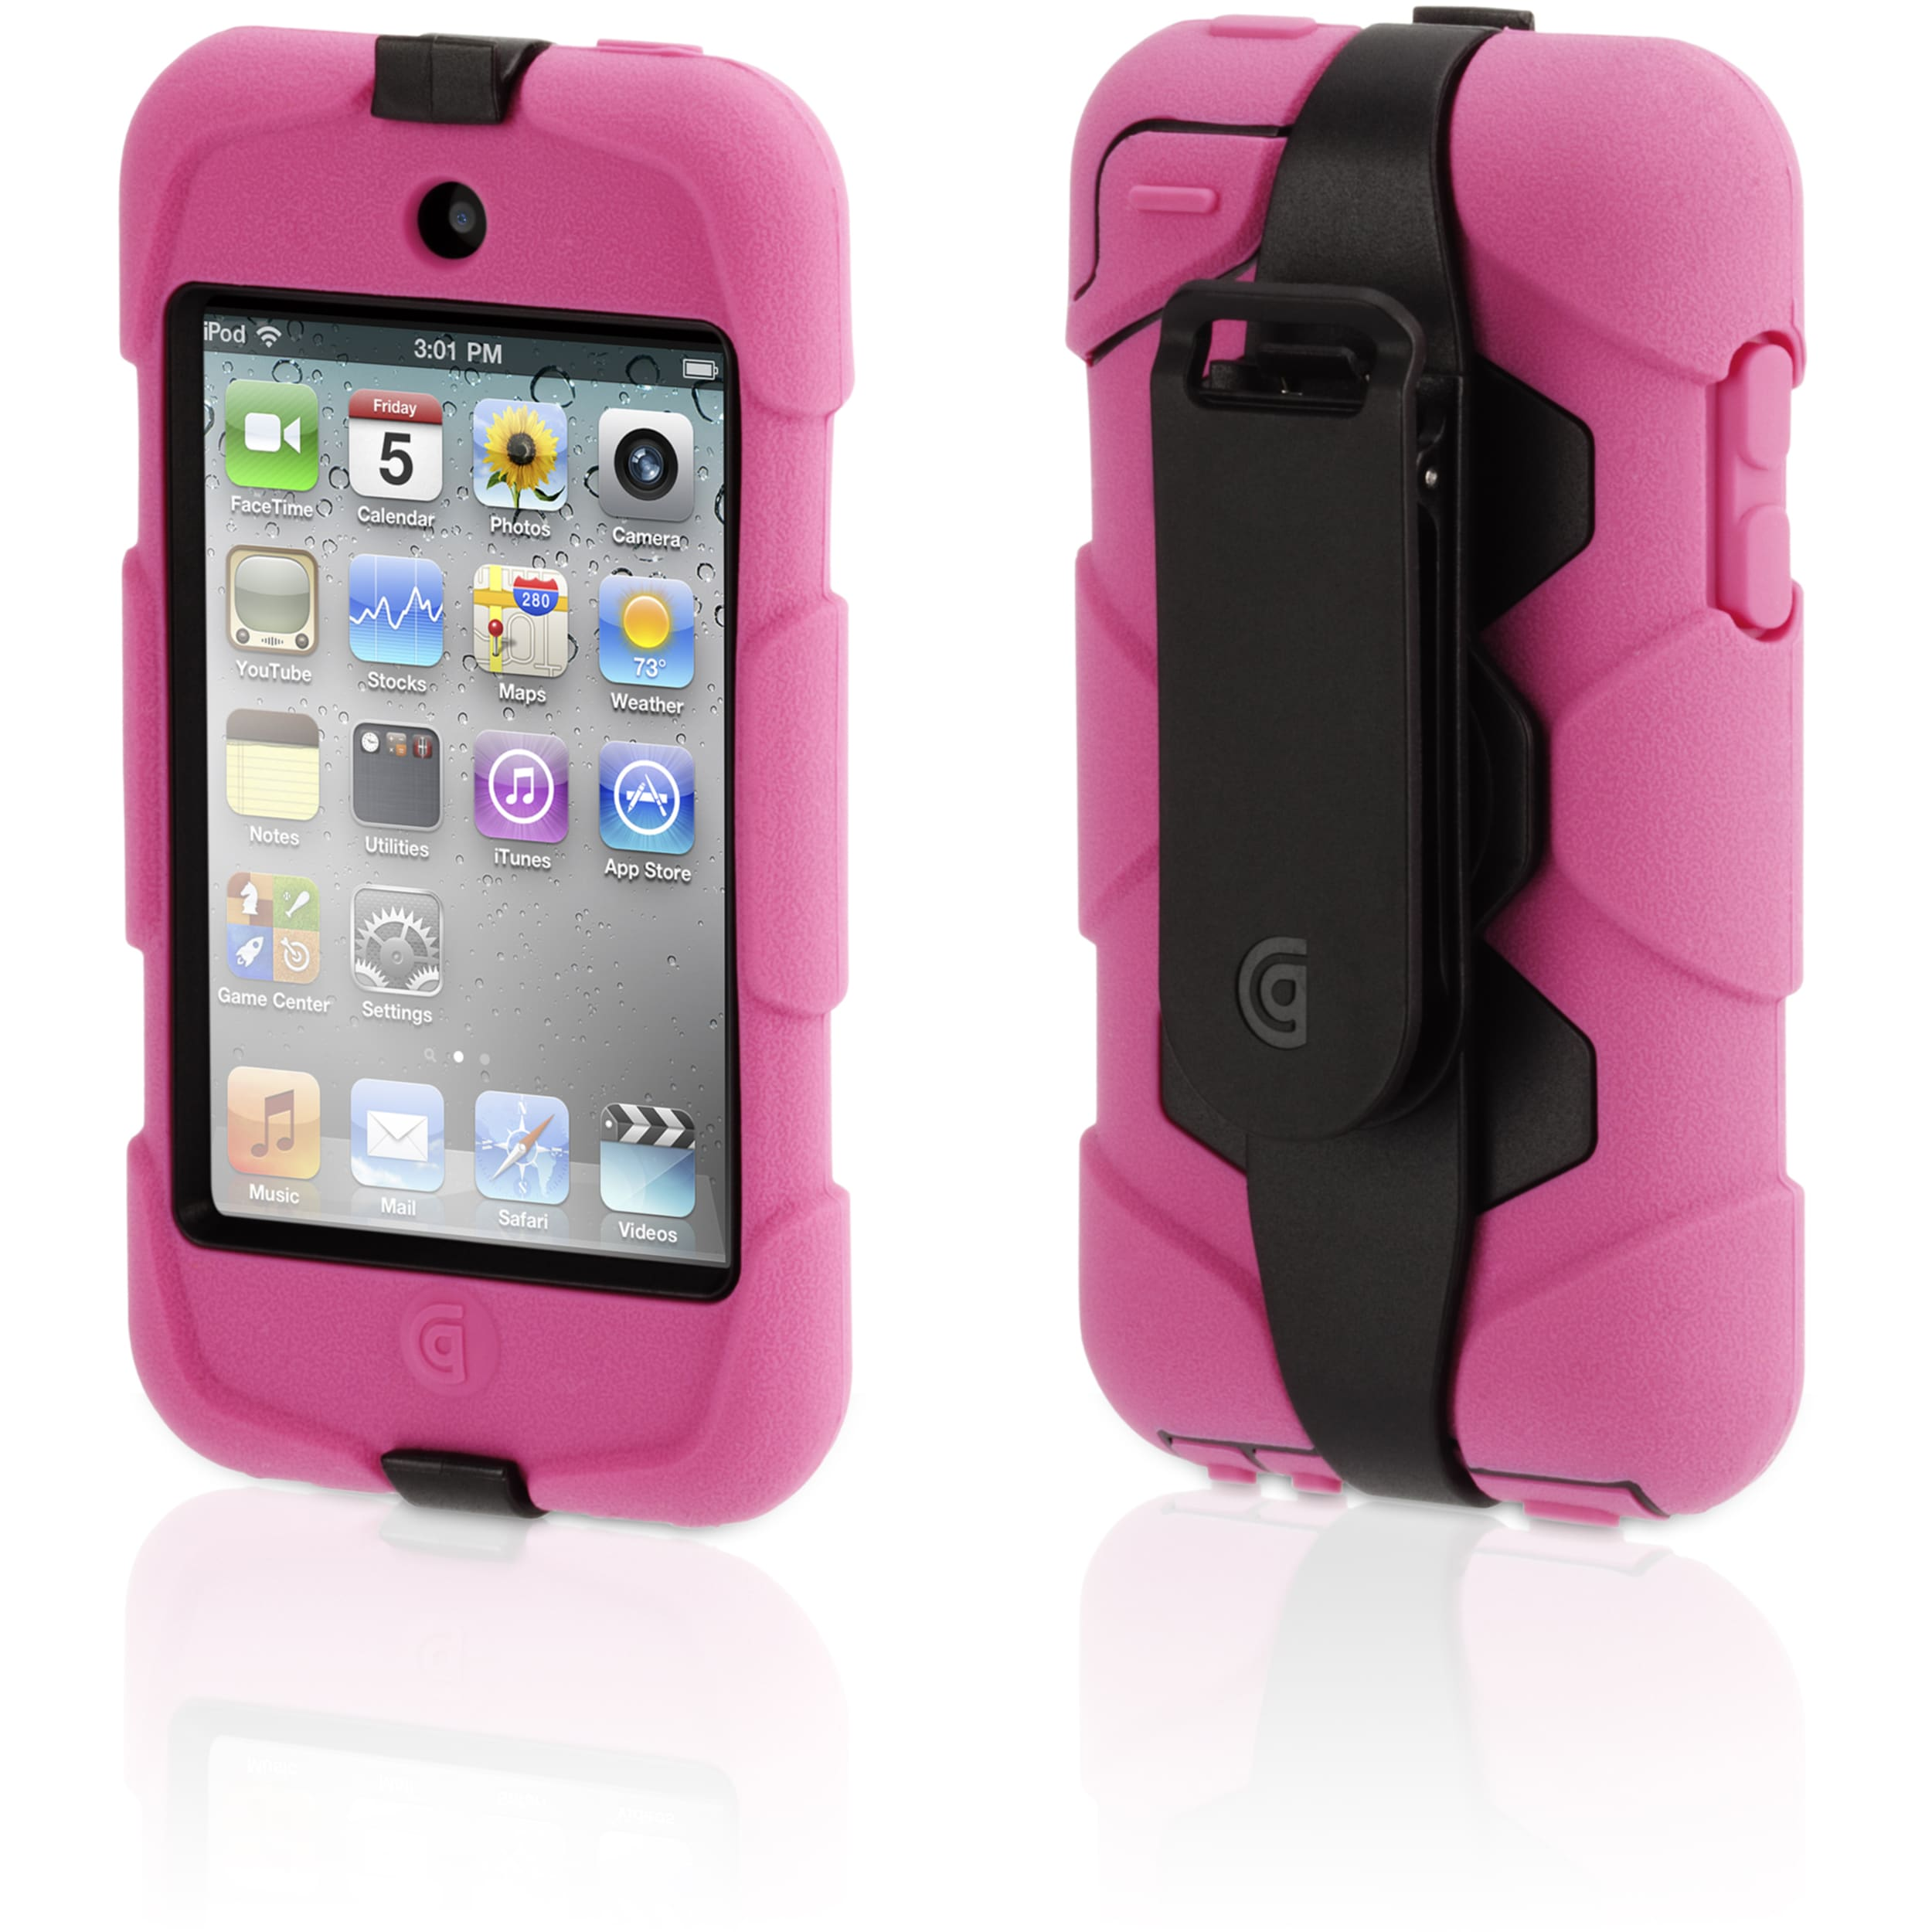 Griffin Survivor GB02478 Carrying Case for iPod - Pink, Black